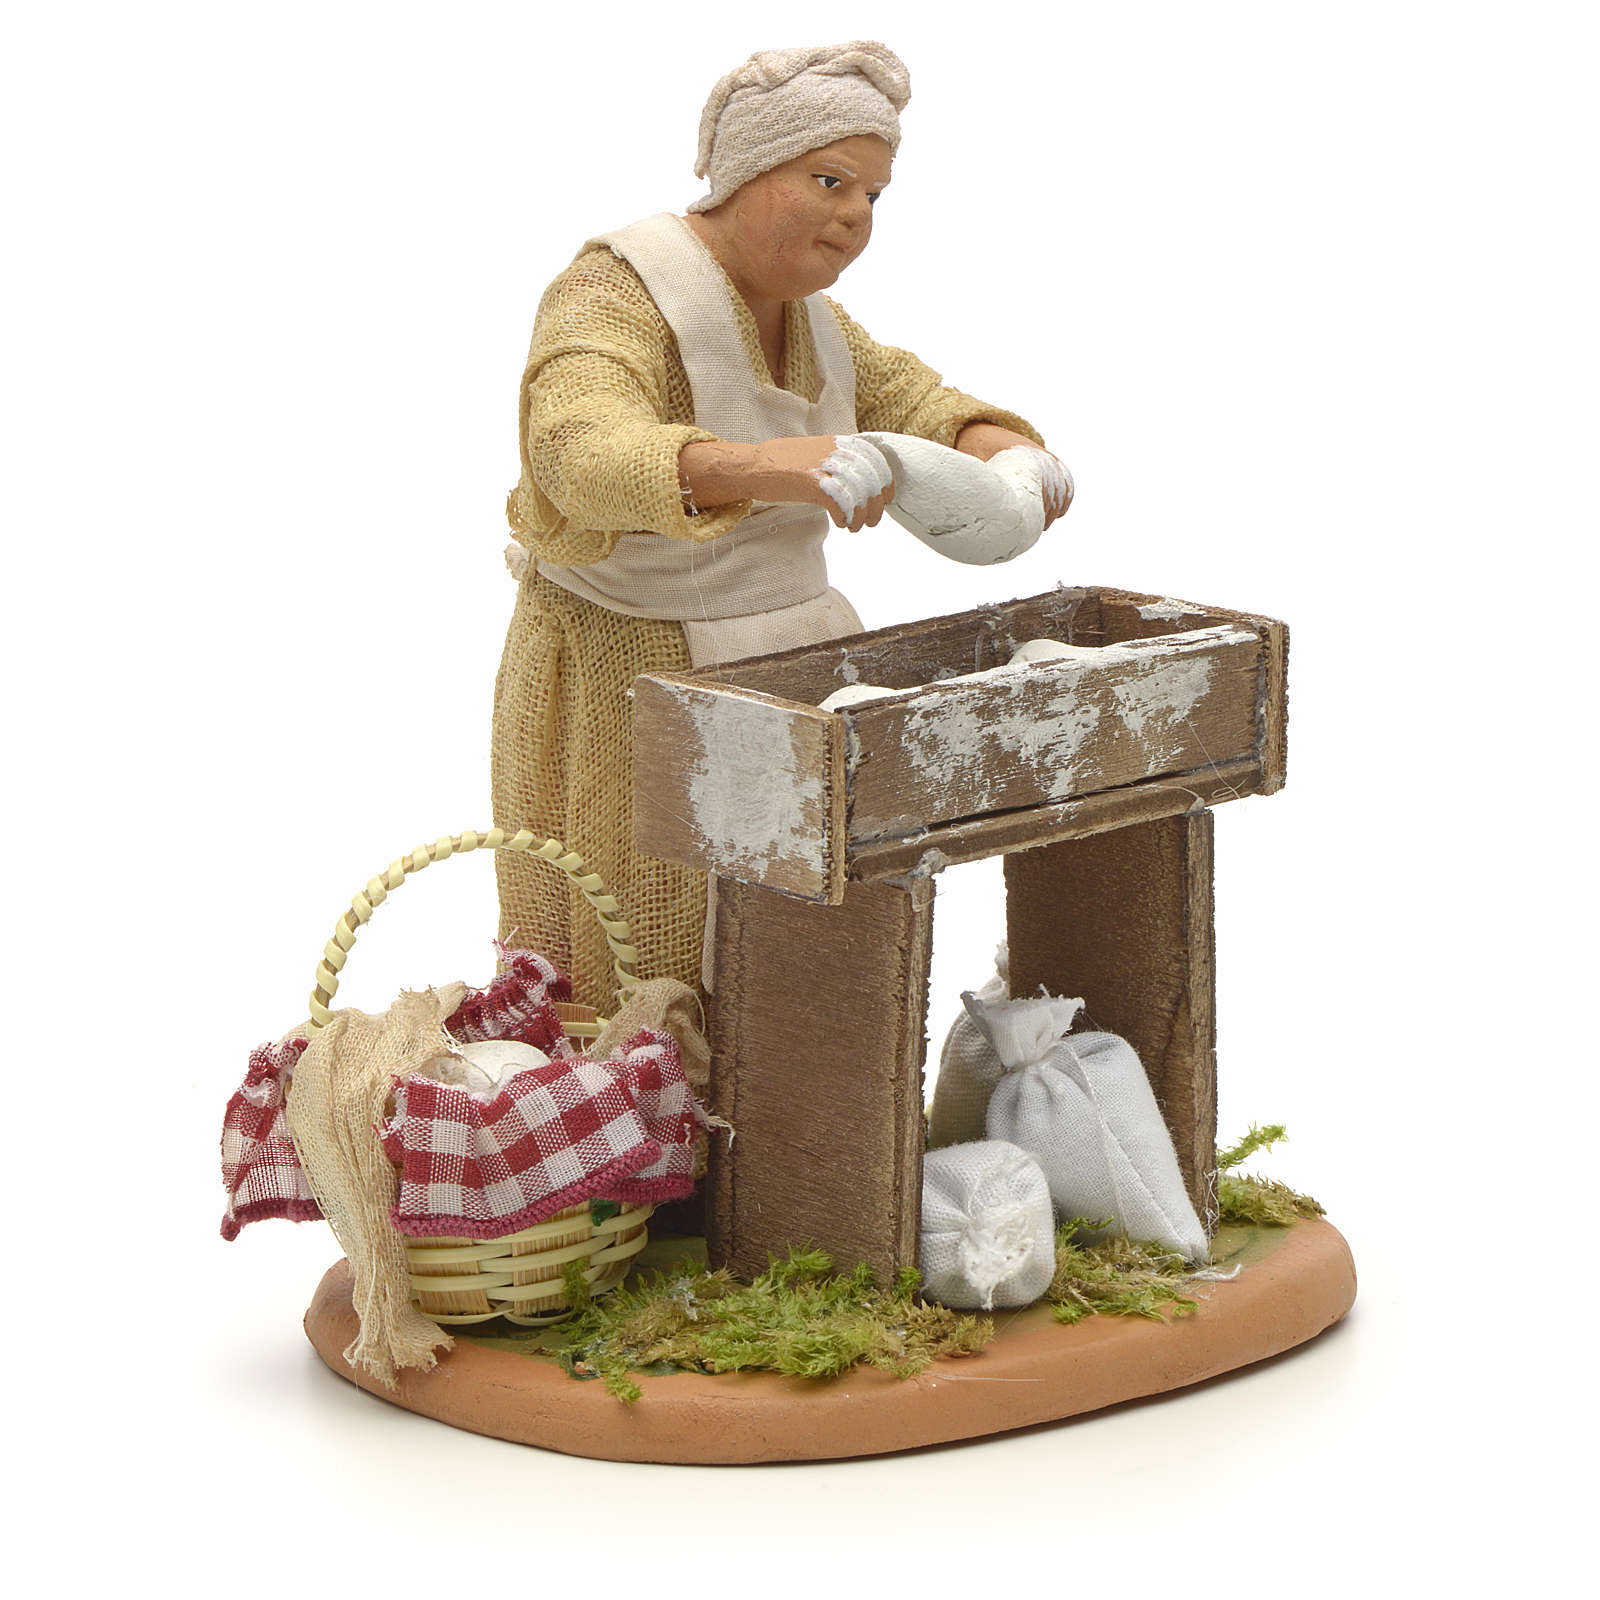 Nativity set accessory woman making bread 14 cm figurine 4